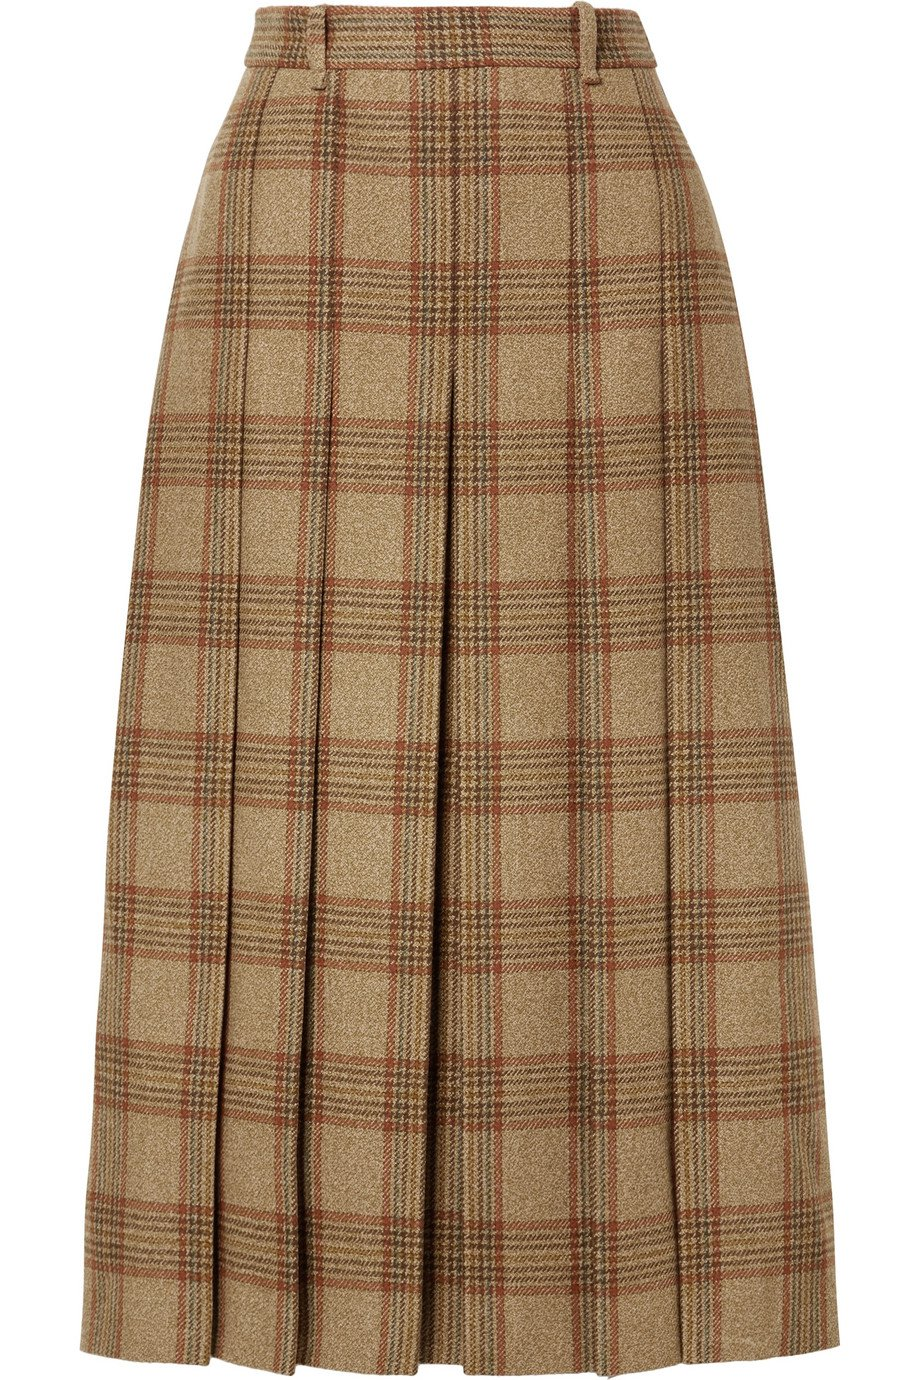 Gucci | Belted checked wool midi skirt | NET-A-PORTER.COM